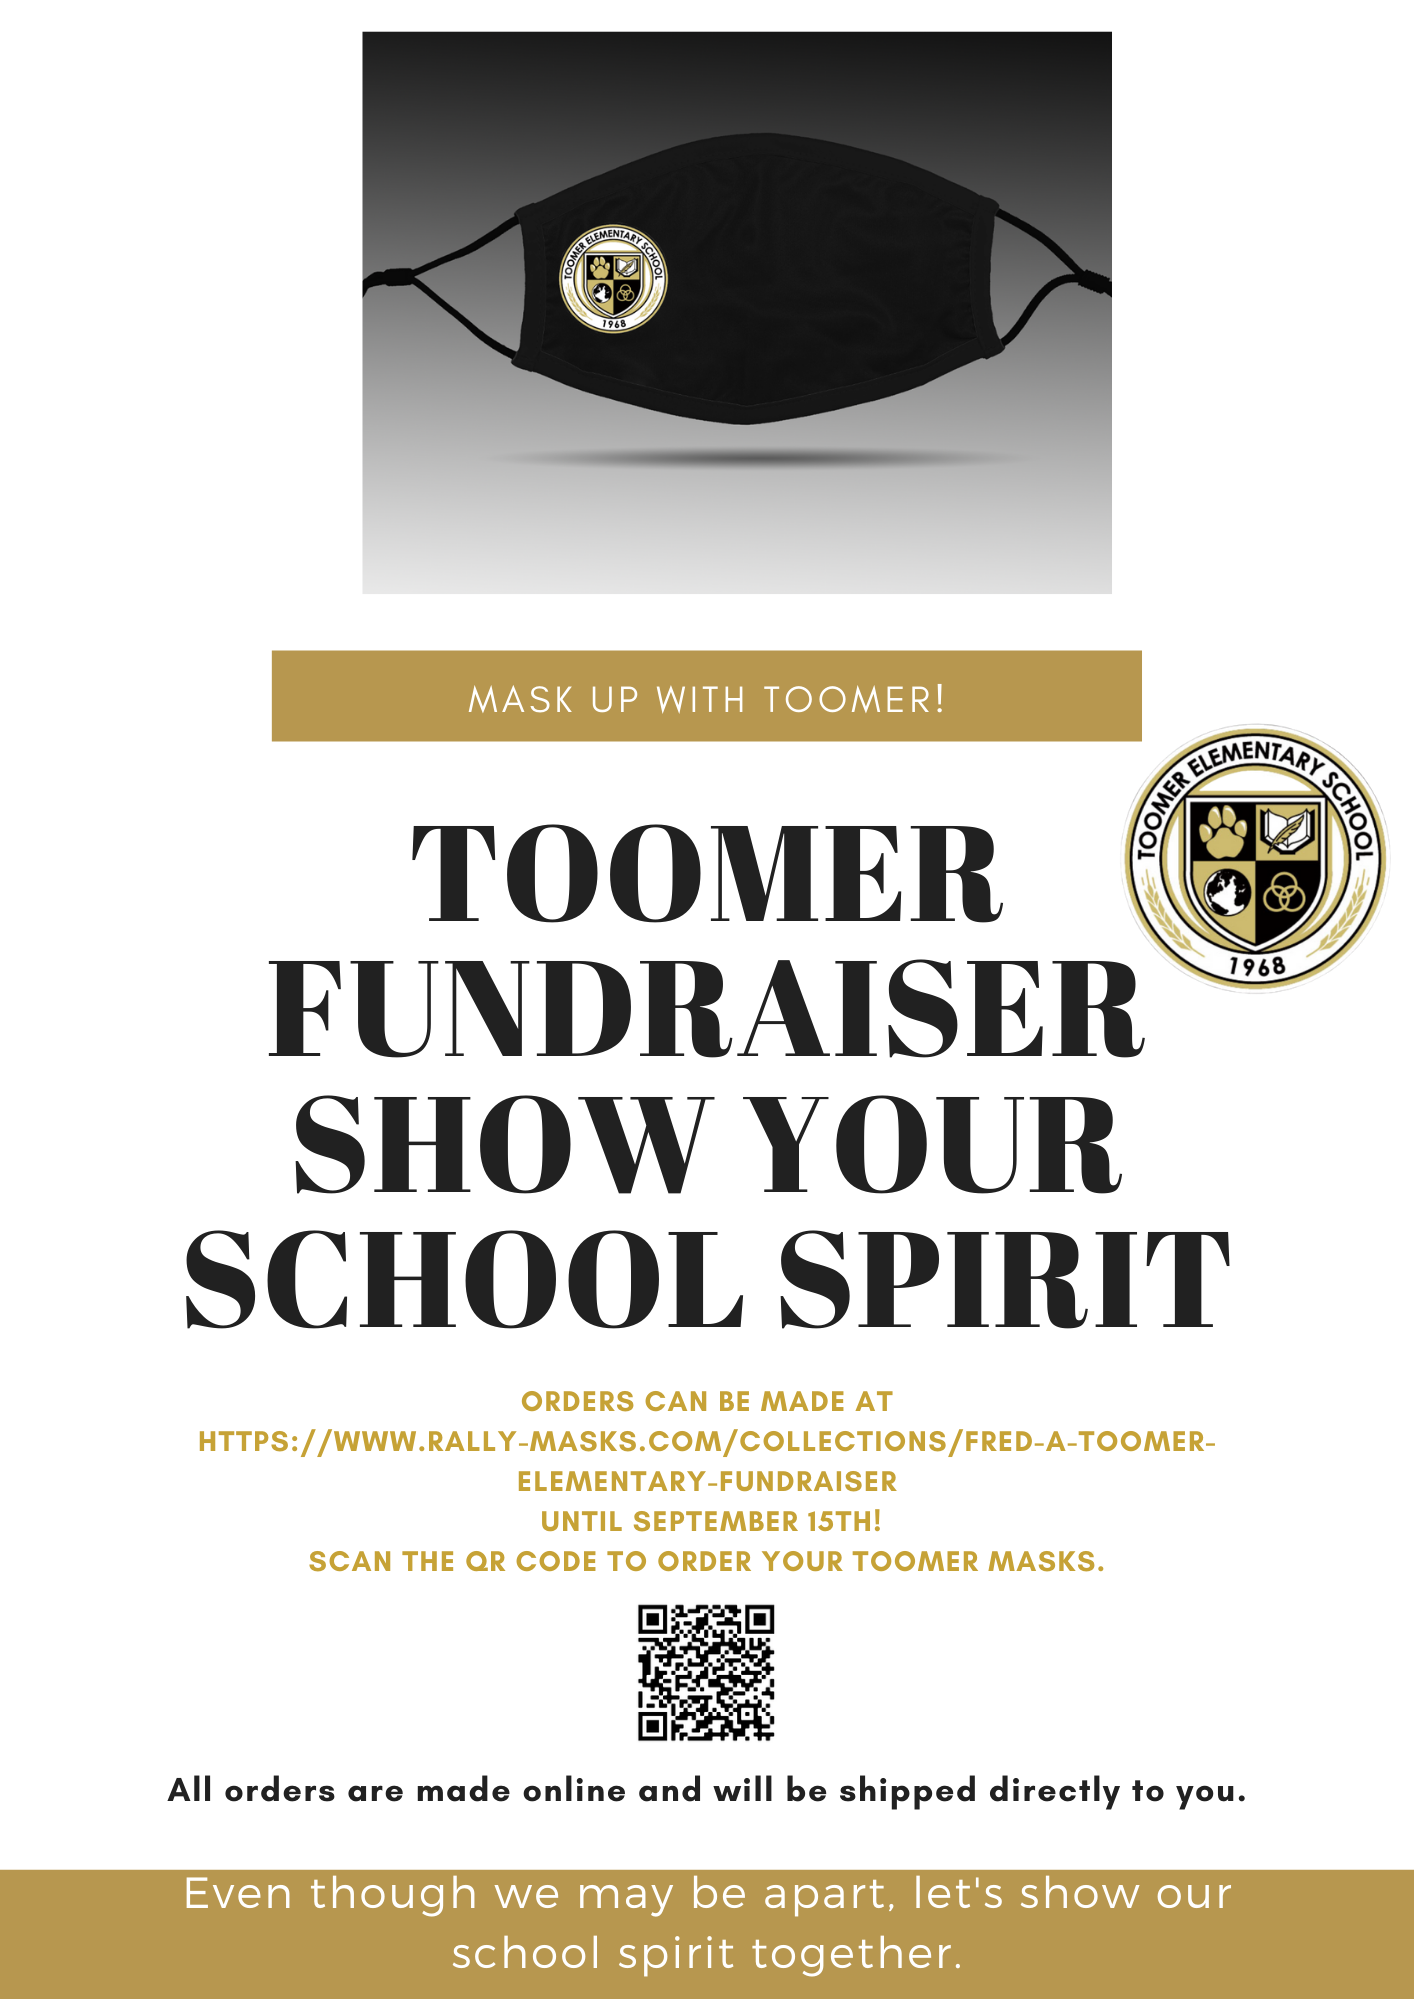 Mask Up with Toomer! Order your mask today!